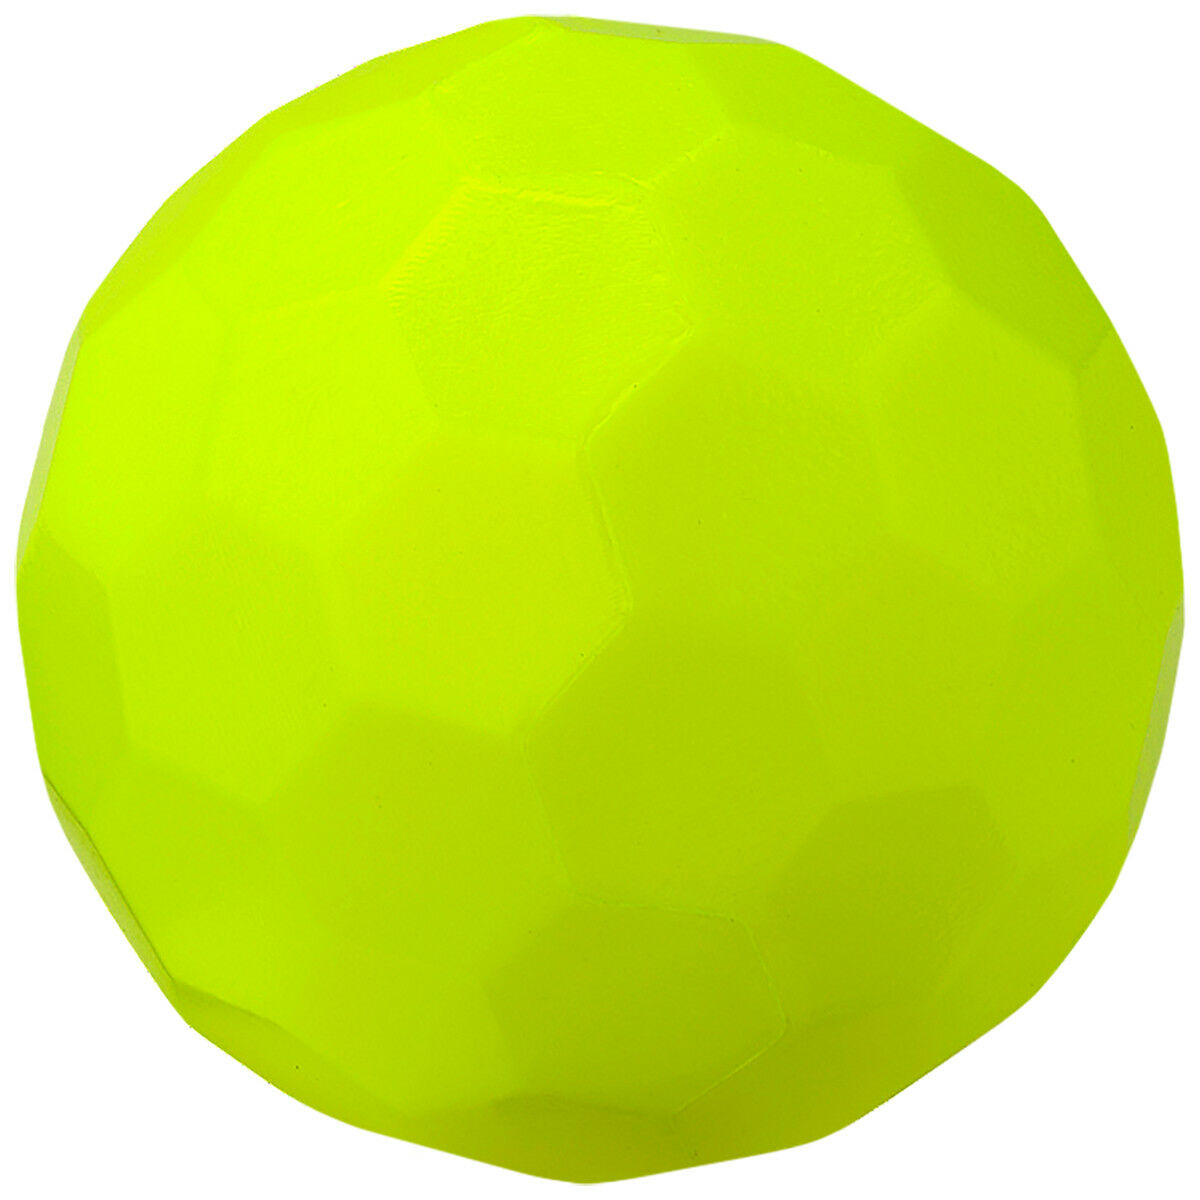 blitzball gamemaster backyard plastic baseball ball wiffle blitz